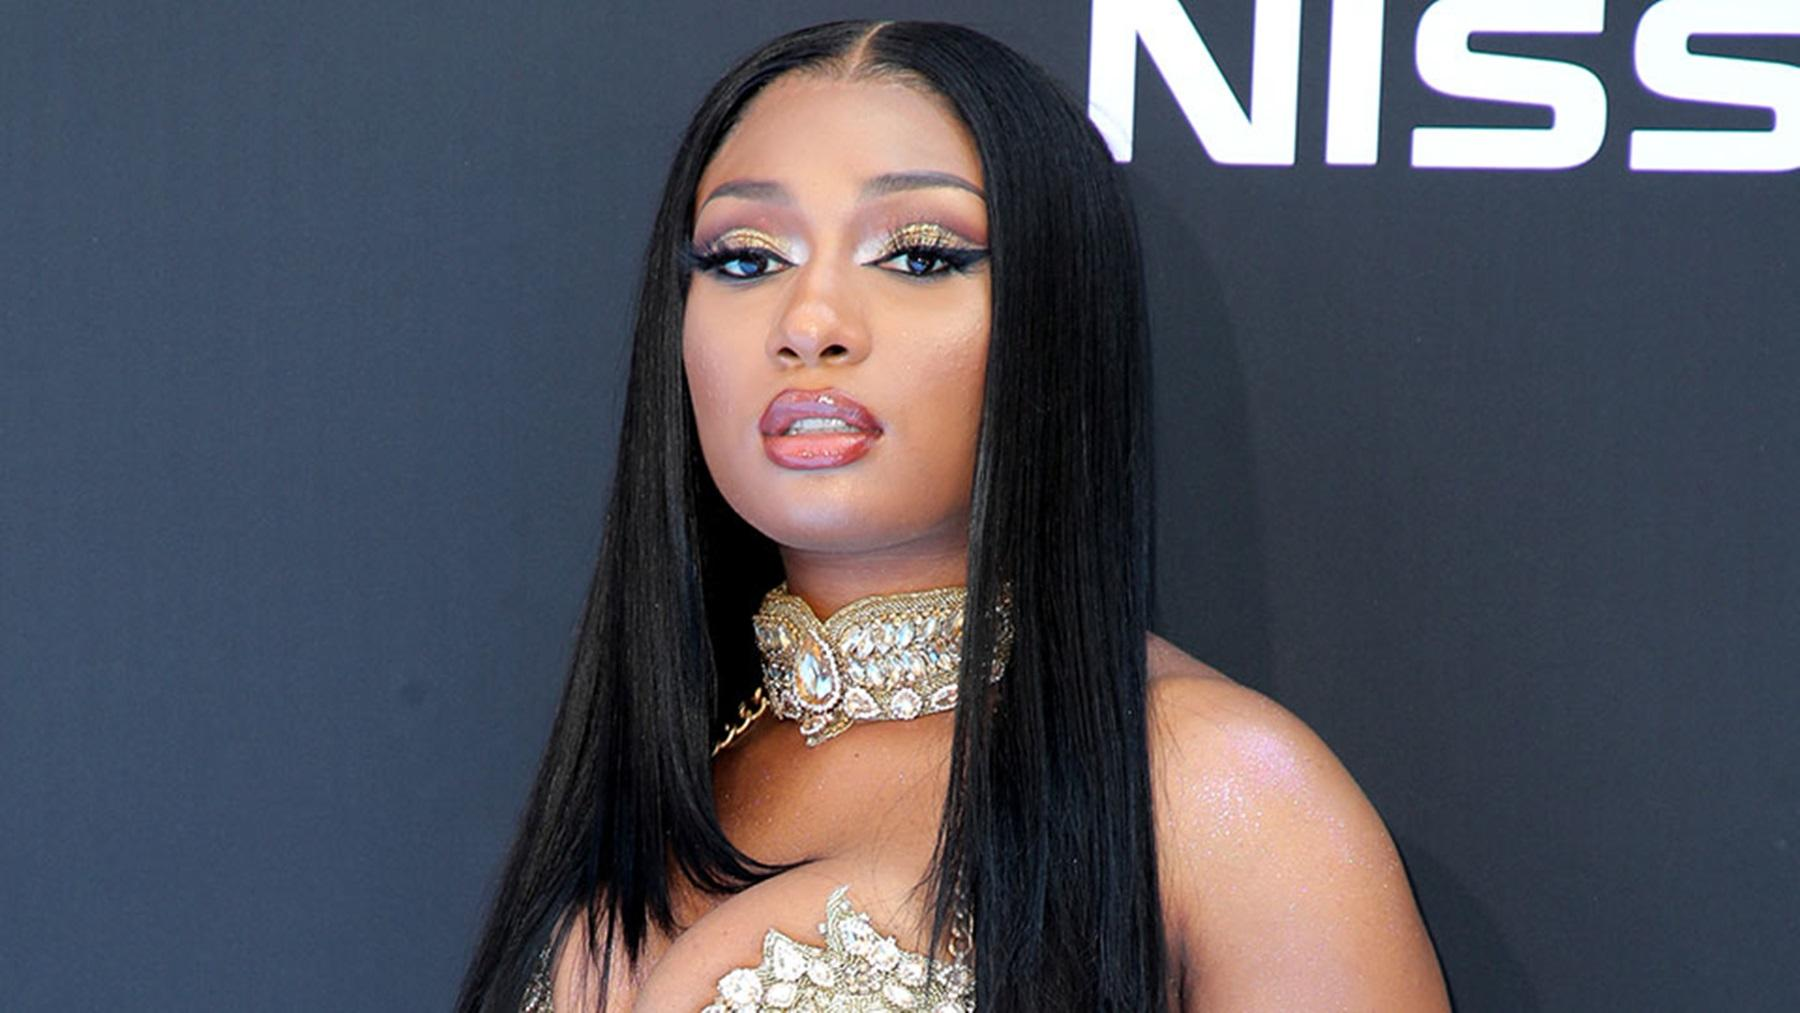 Megan Thee Stallion Bashes Hater Who Linked Her Deal With Jay Z  And The Death Of Her Mother To The Devil After Sharing This Photo